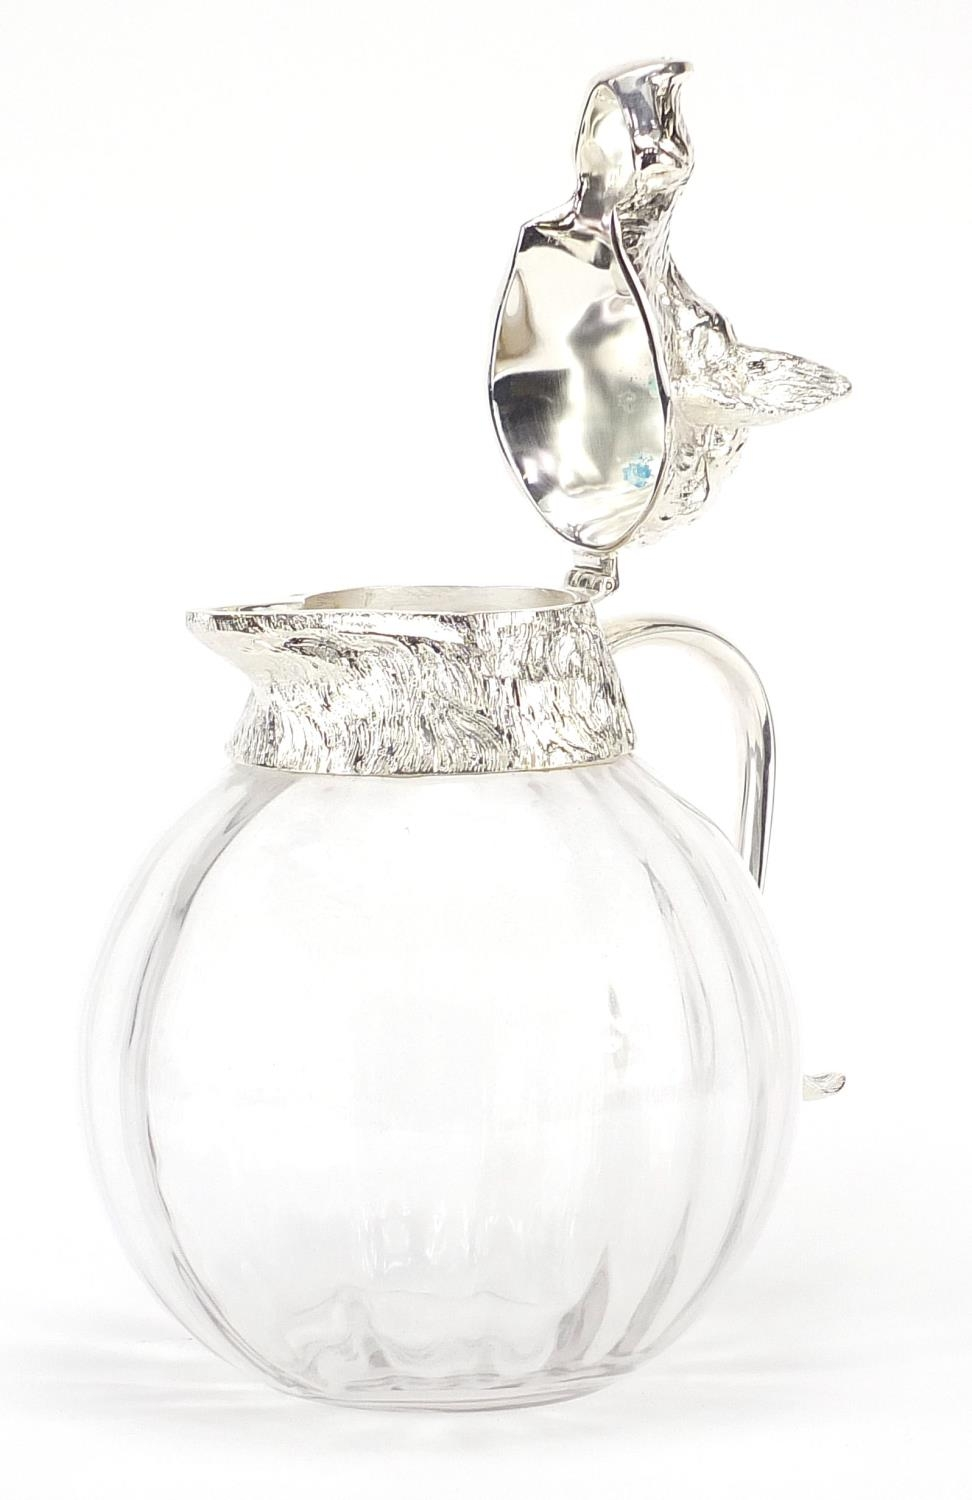 Manner of Valenti, globular glass carafe with silver plated mounts in the form of a boars head, 28cm - Image 3 of 10